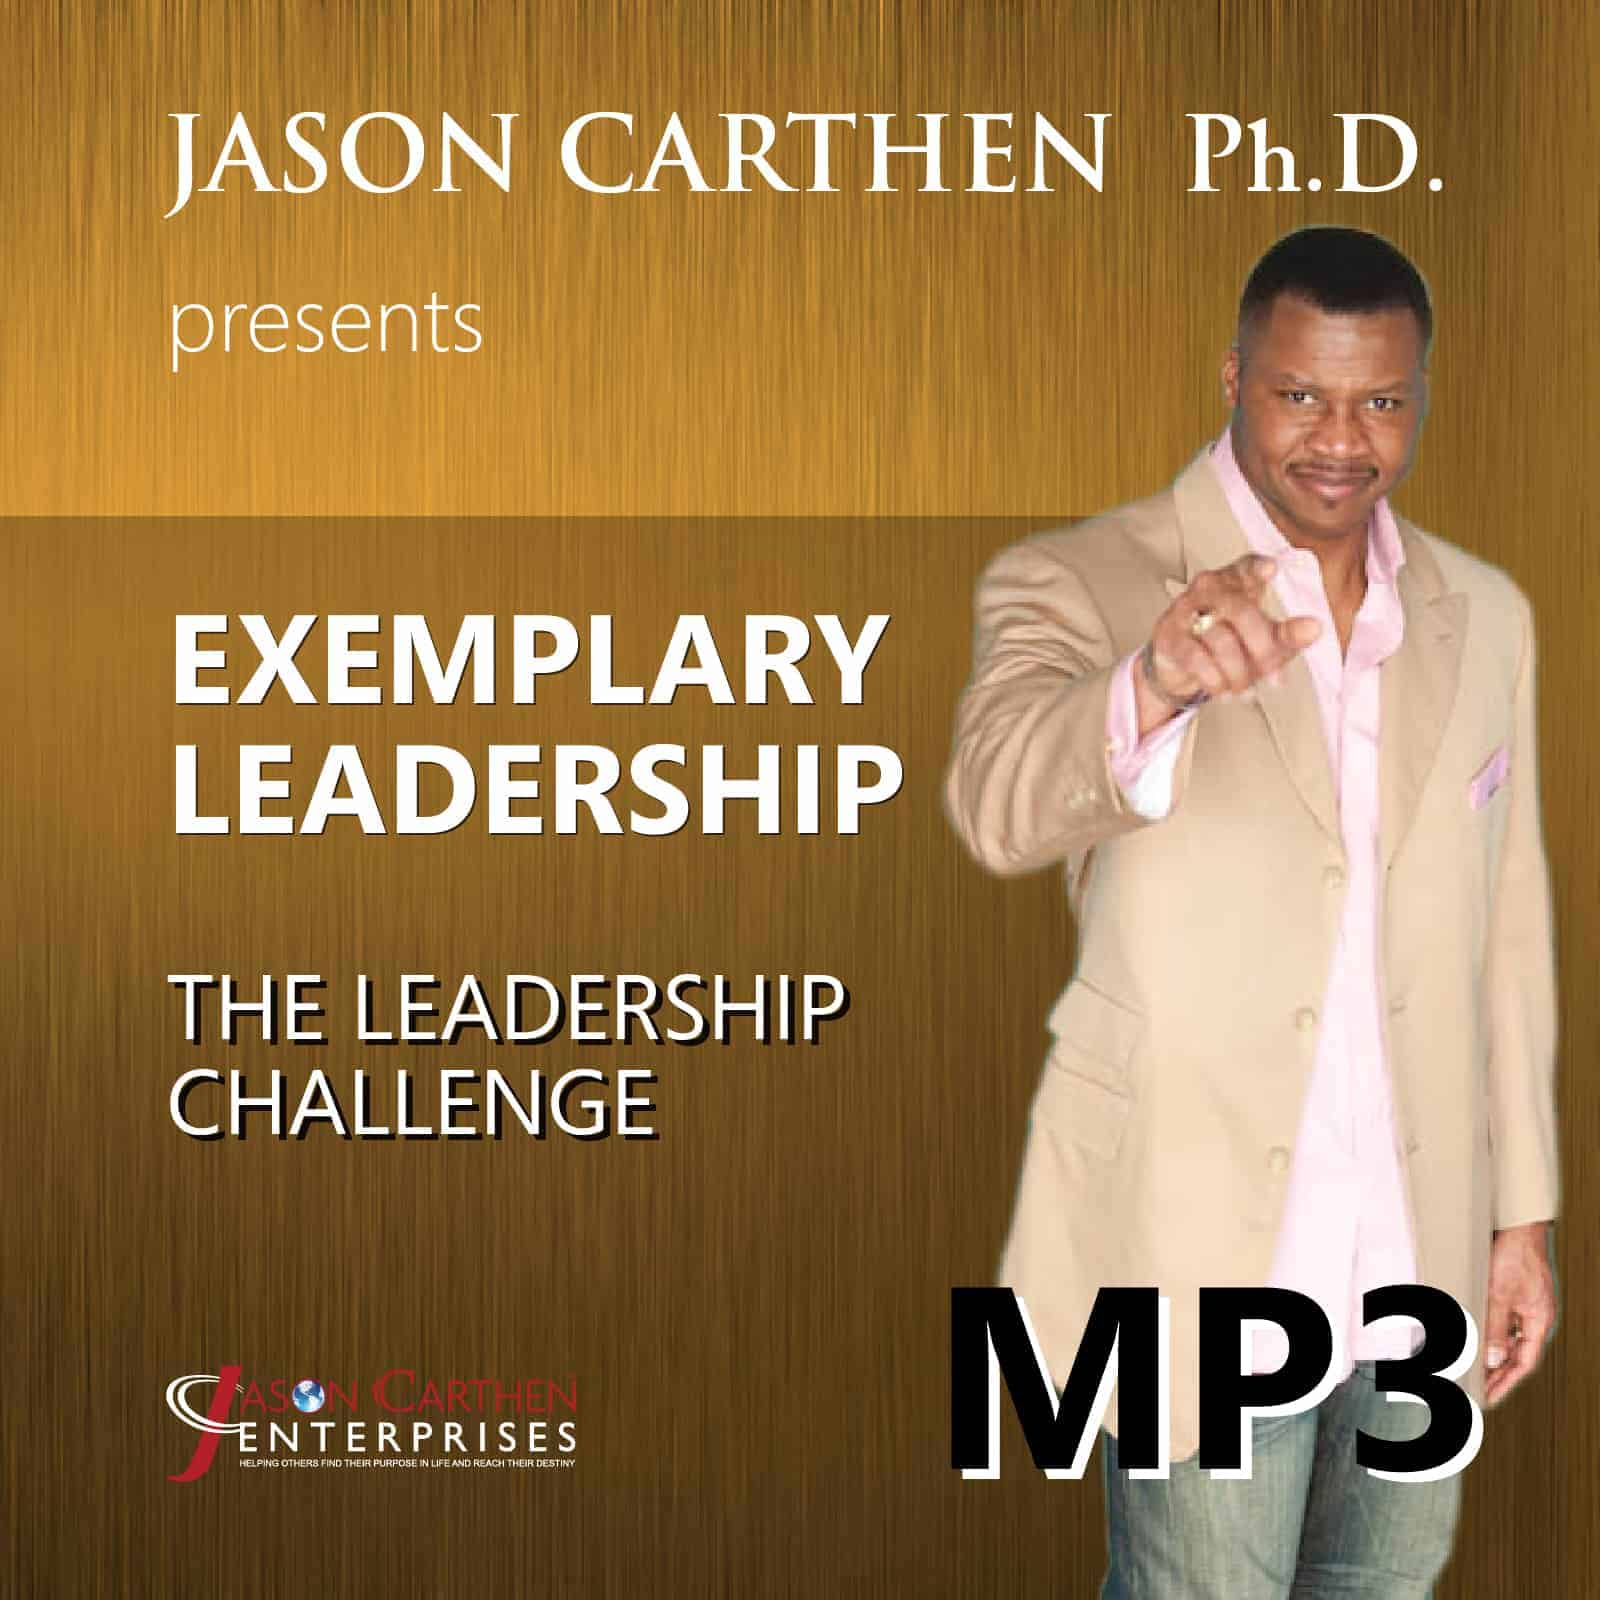 Dr. Jason Carthen: The Leadership Challenge